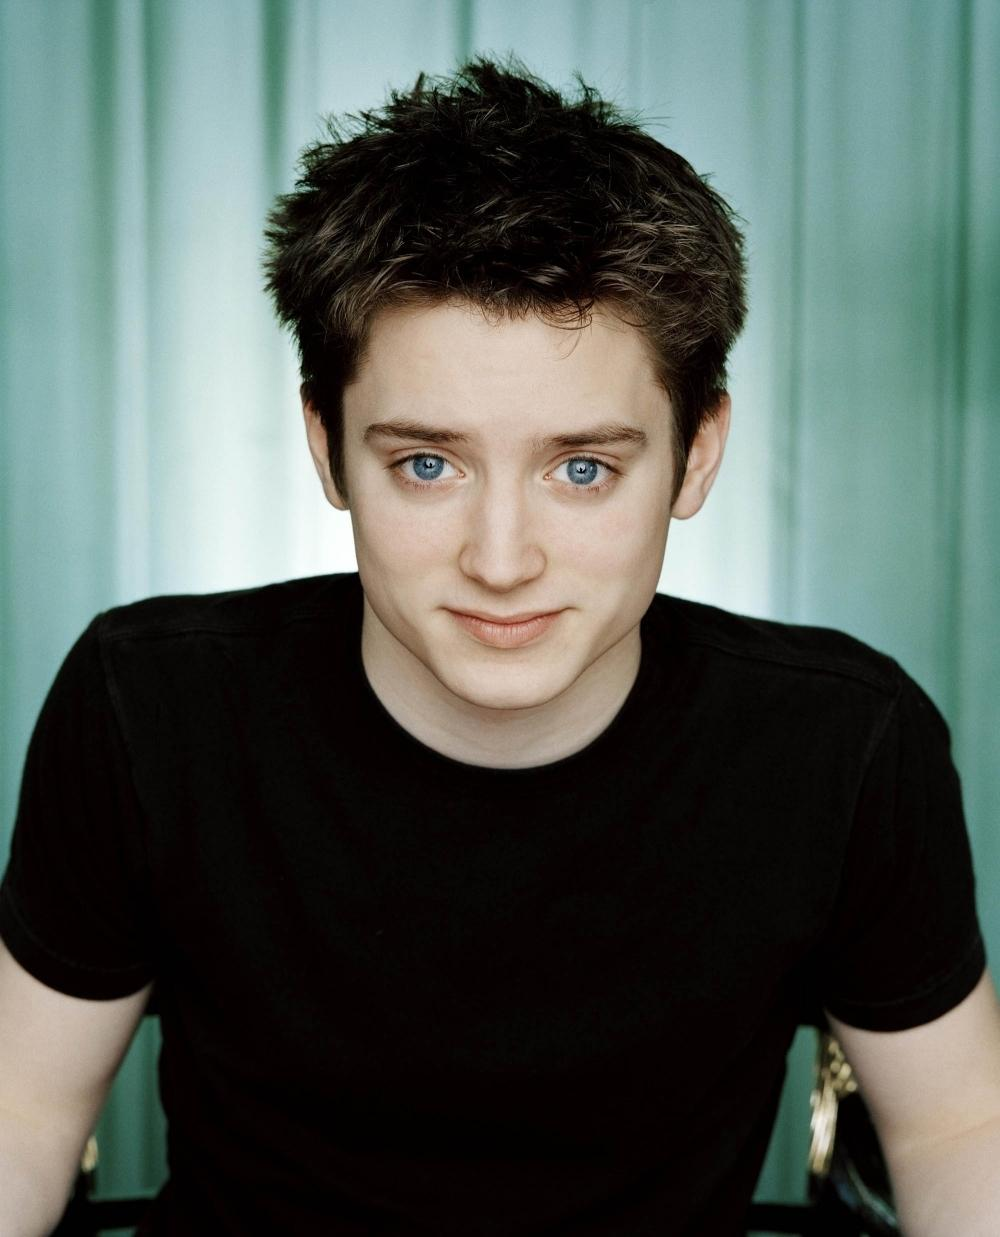 Elijah Wood image Elijah Wood HD wallpapers and backgrounds photos